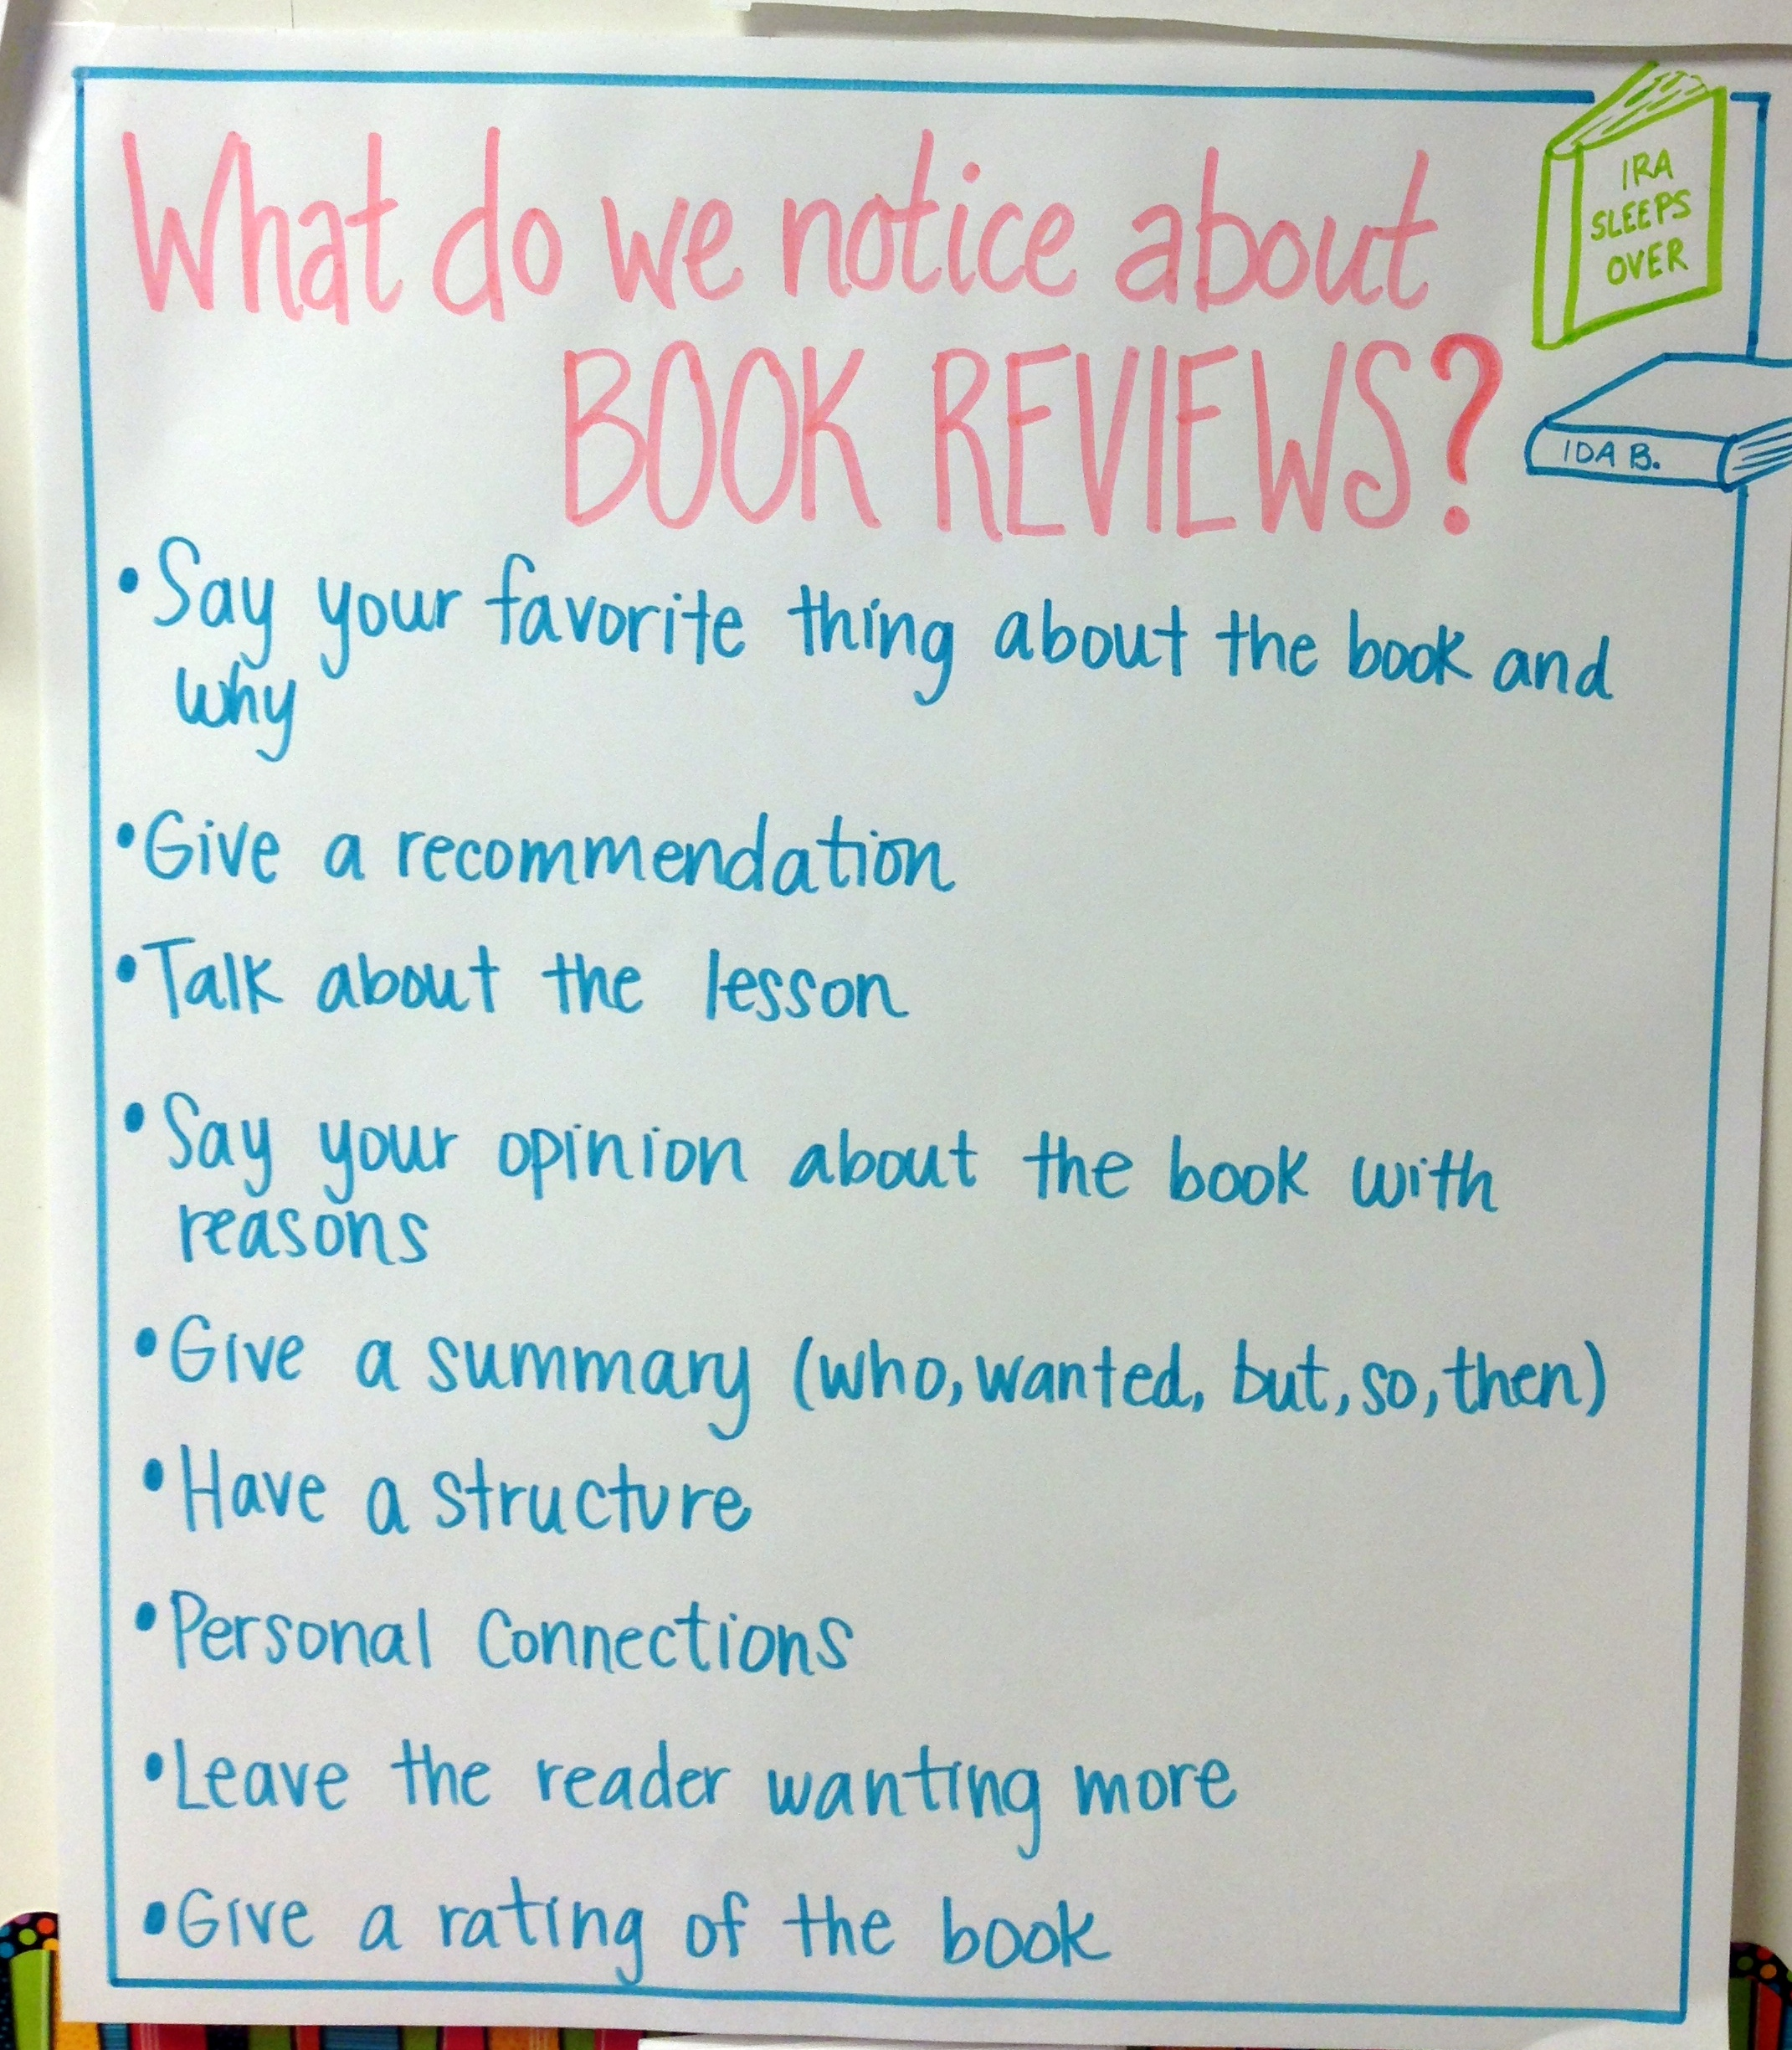 writing book reviews A book review is a thorough description, critical analysis, and/or evaluation of the quality, meaning, and significance of a book, often in relation to prior research on the topic reviews generally range from 500-1000 words, but may be longer or shorter depending on the length and complexity of the.